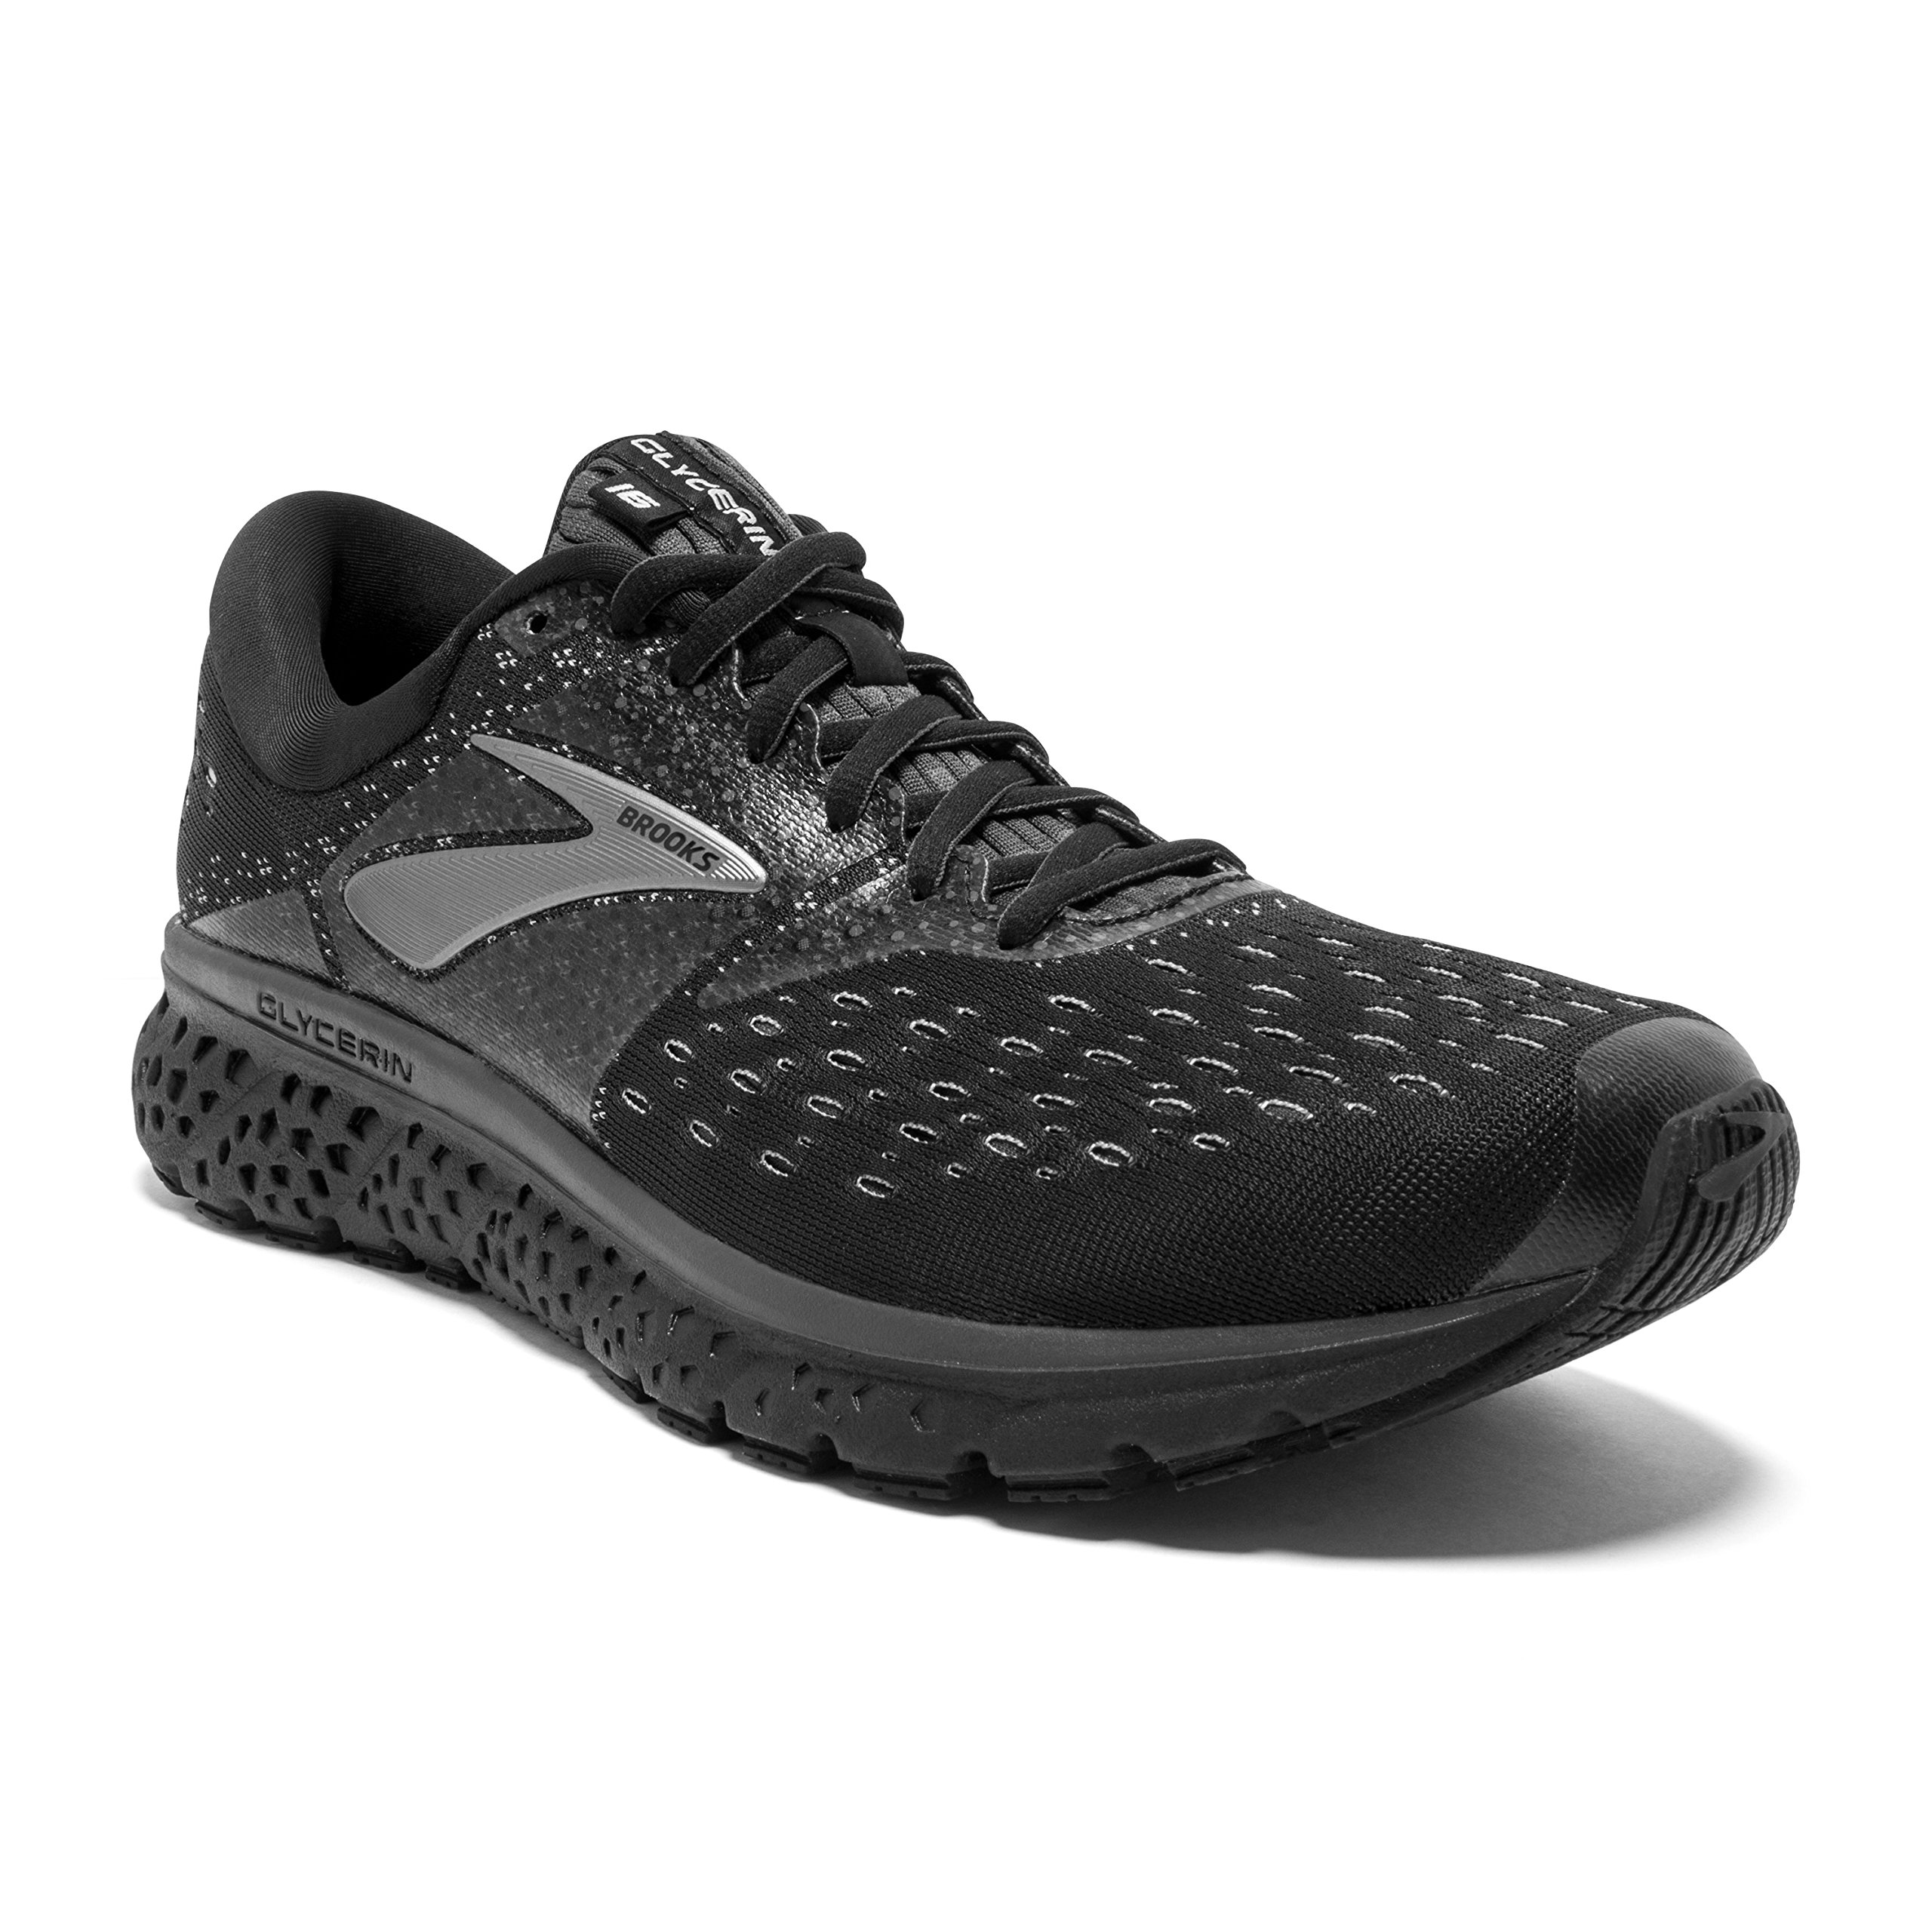 Brooks Mens Glycerin 16 - Black/Ebony - D - 8.0 by Brooks